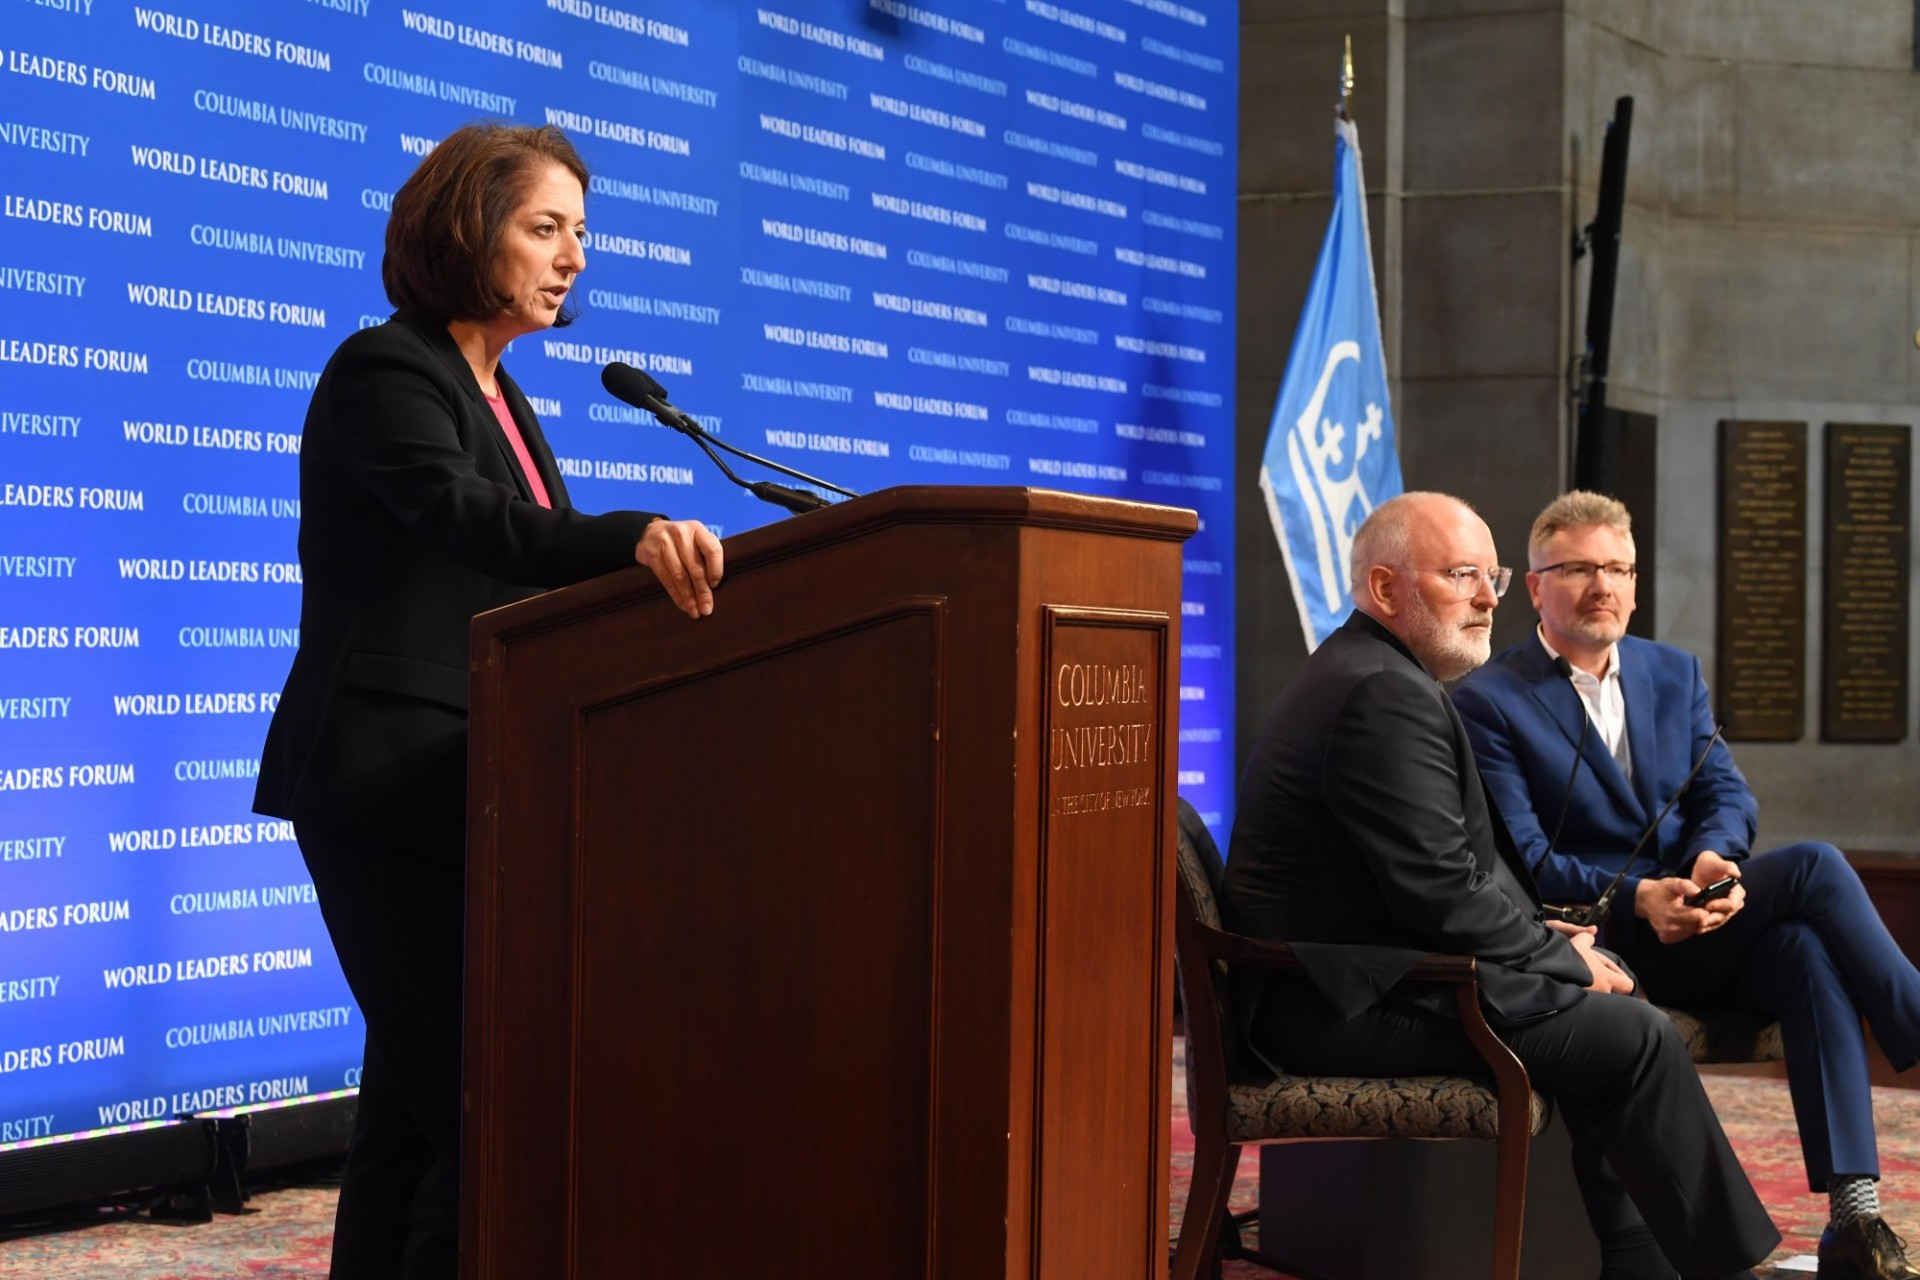 Anya Schiffrin, Director of the Technology, Media, and Communications specialization at the School of International and Public Affairs begins the World Leaders Forum with an introduction of First Vice-President Frans Timmermans of the European Commission.